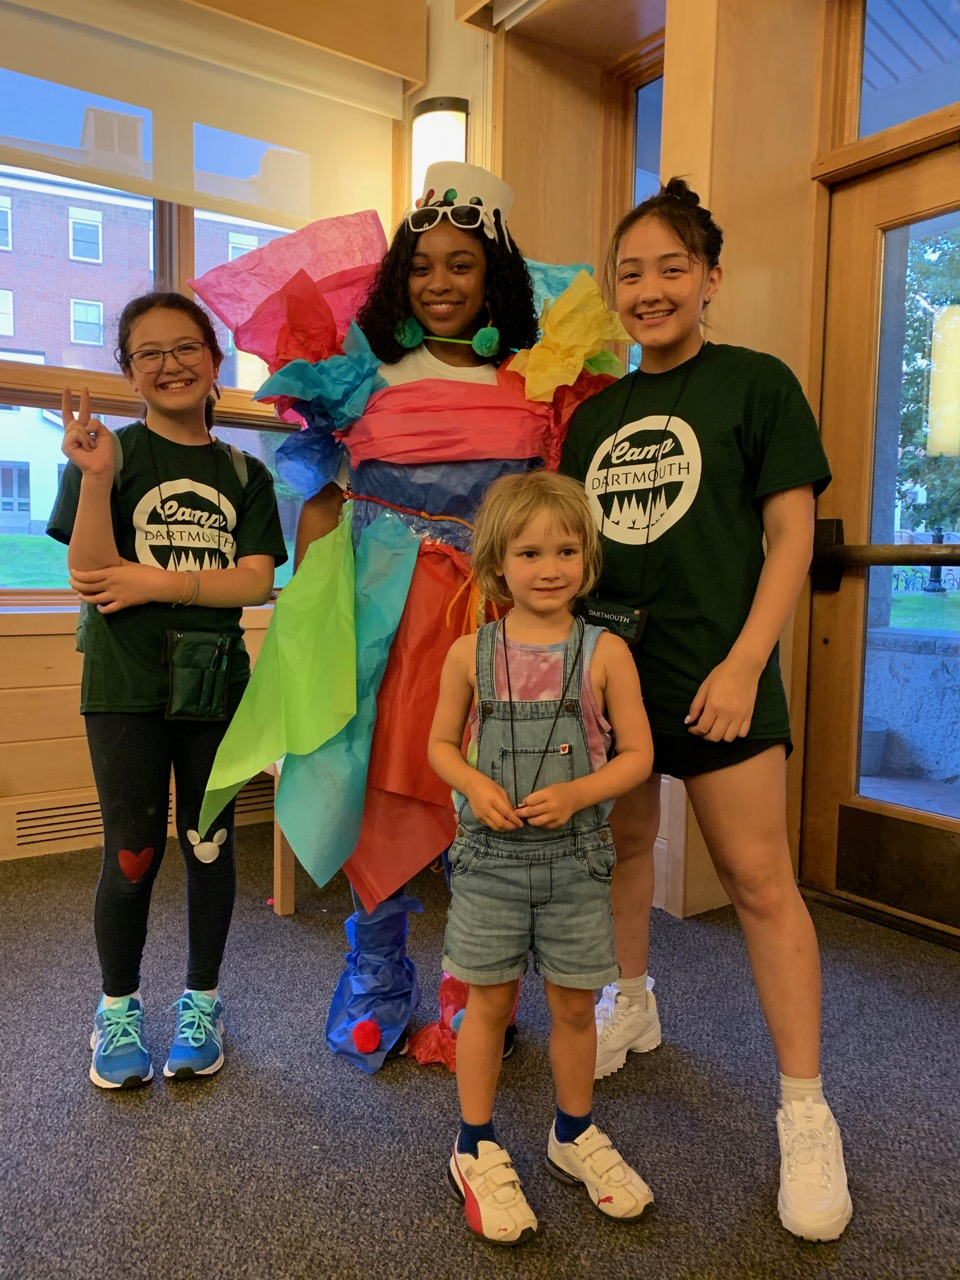 The girls had fun dressing up one of the counselors during a friendly ice-breaker the first night